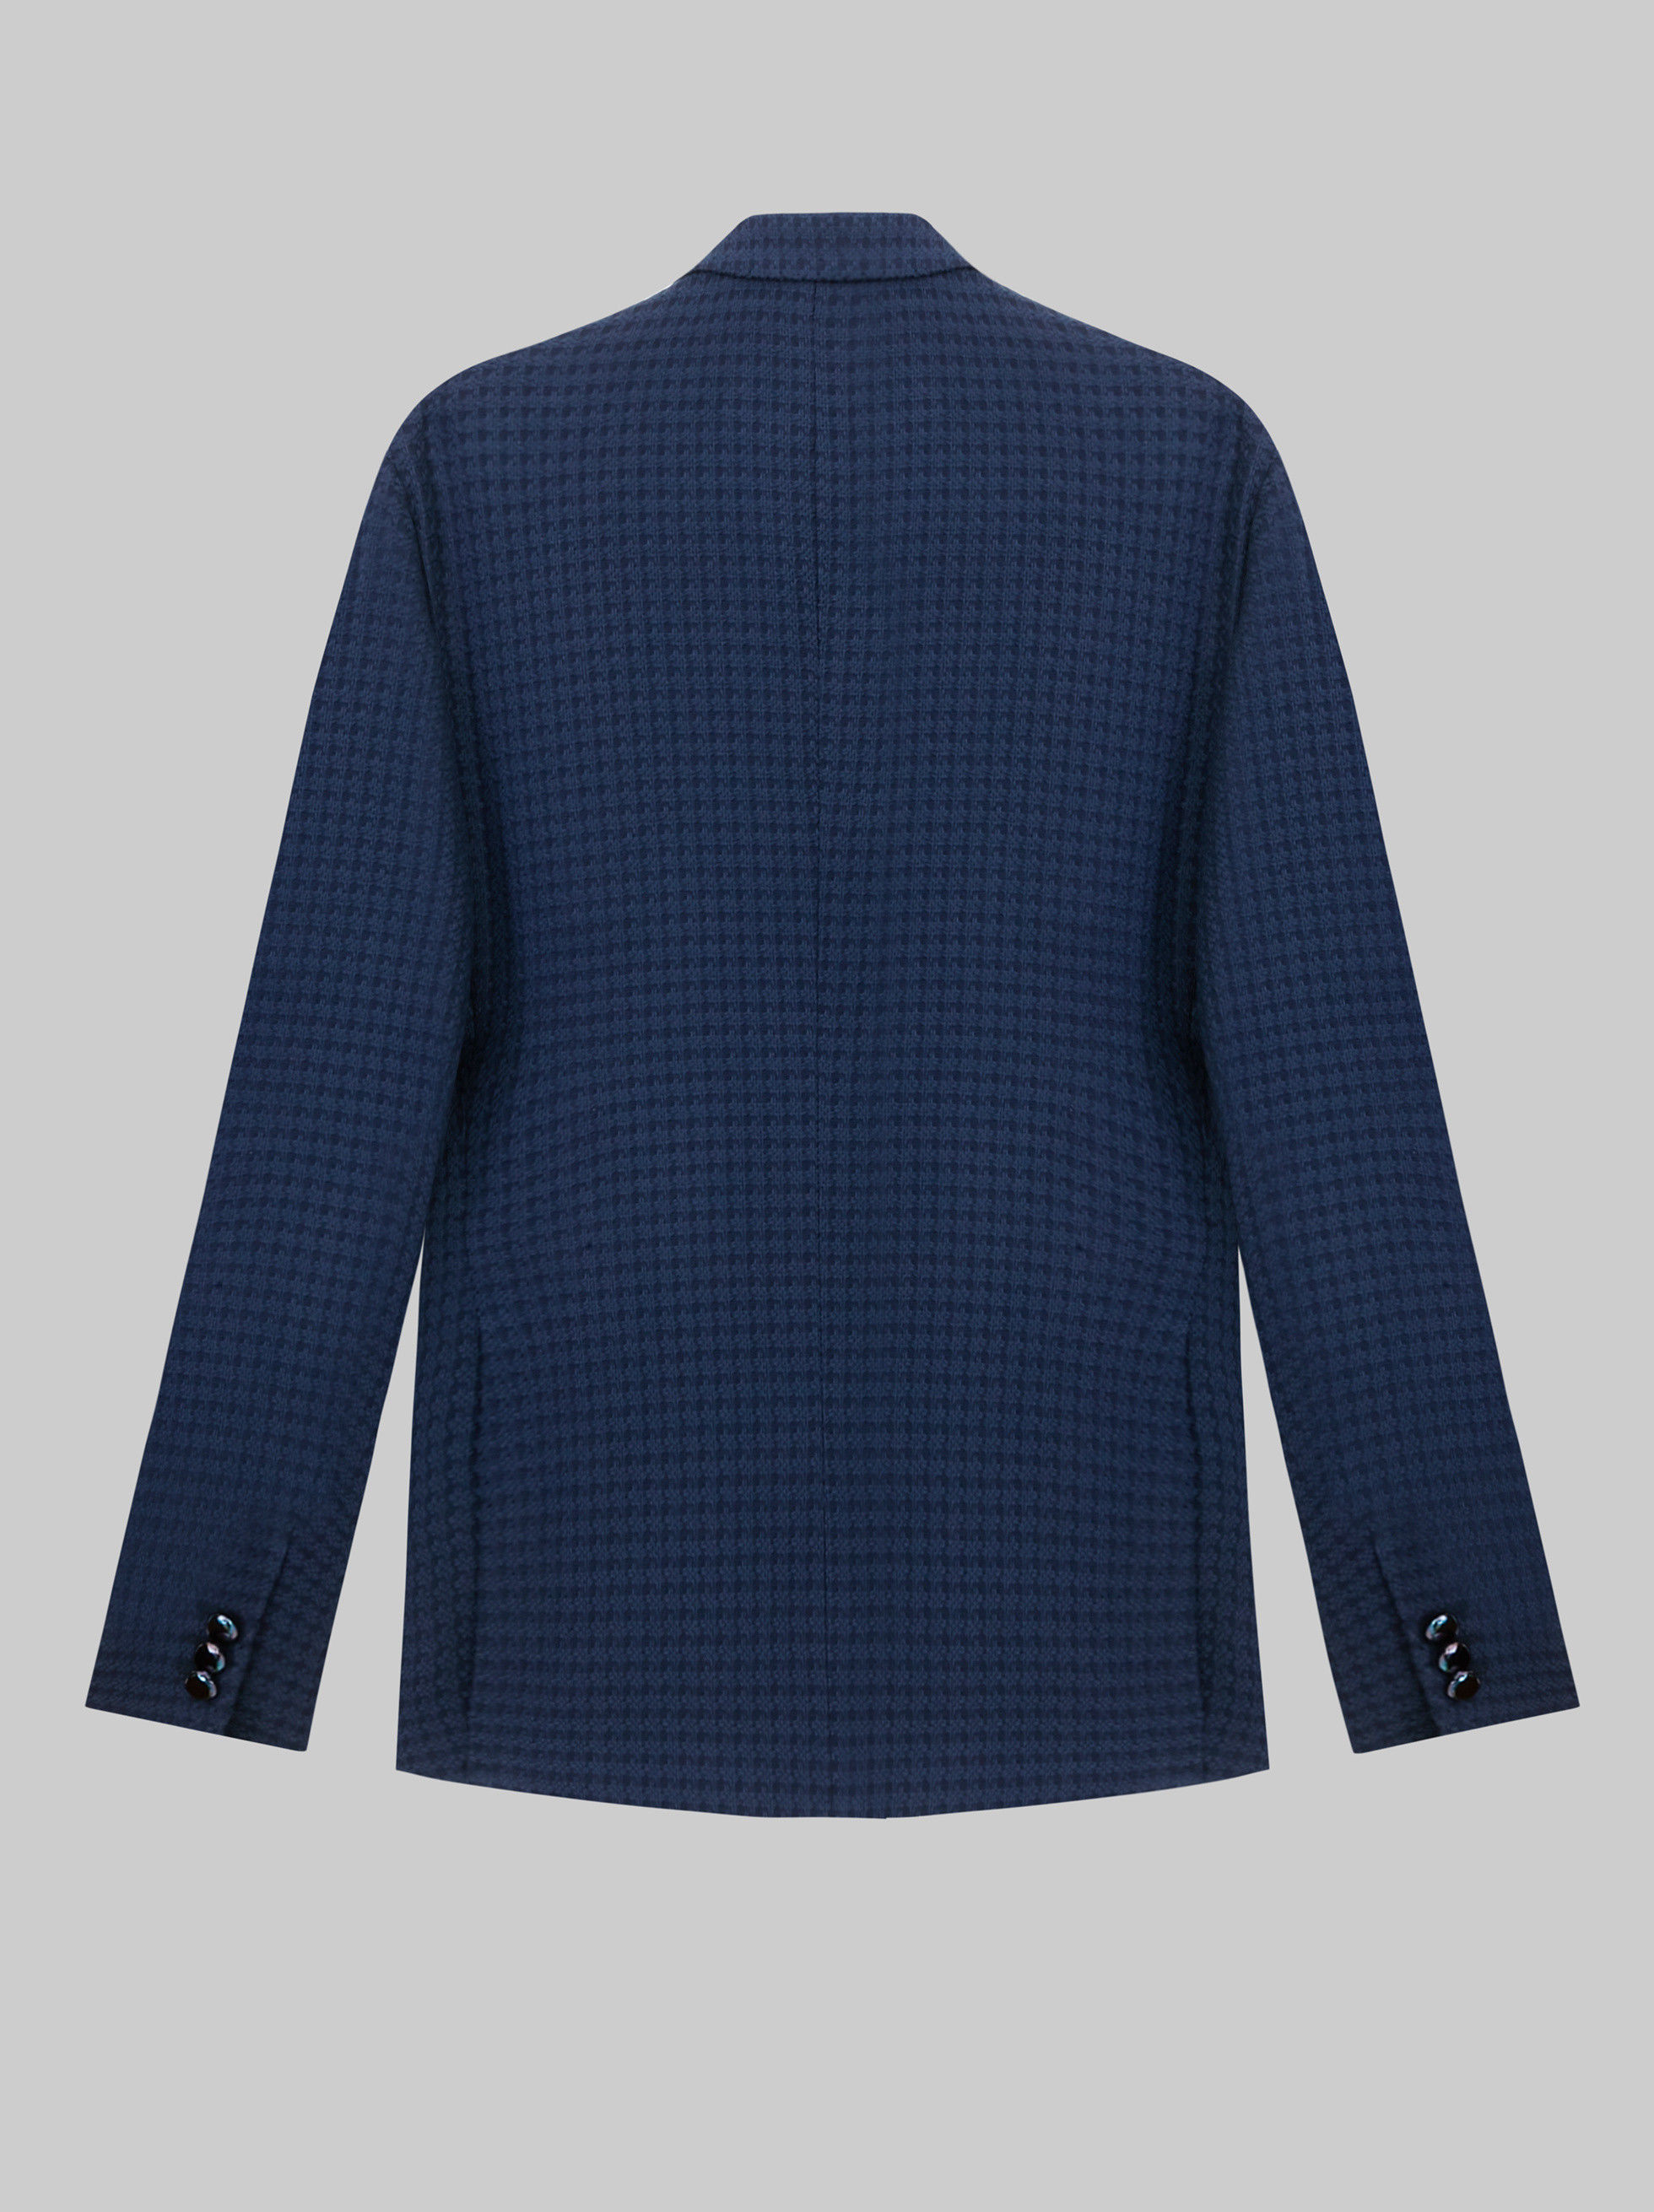 HOUNDSTOOTH TAILORED JACKET